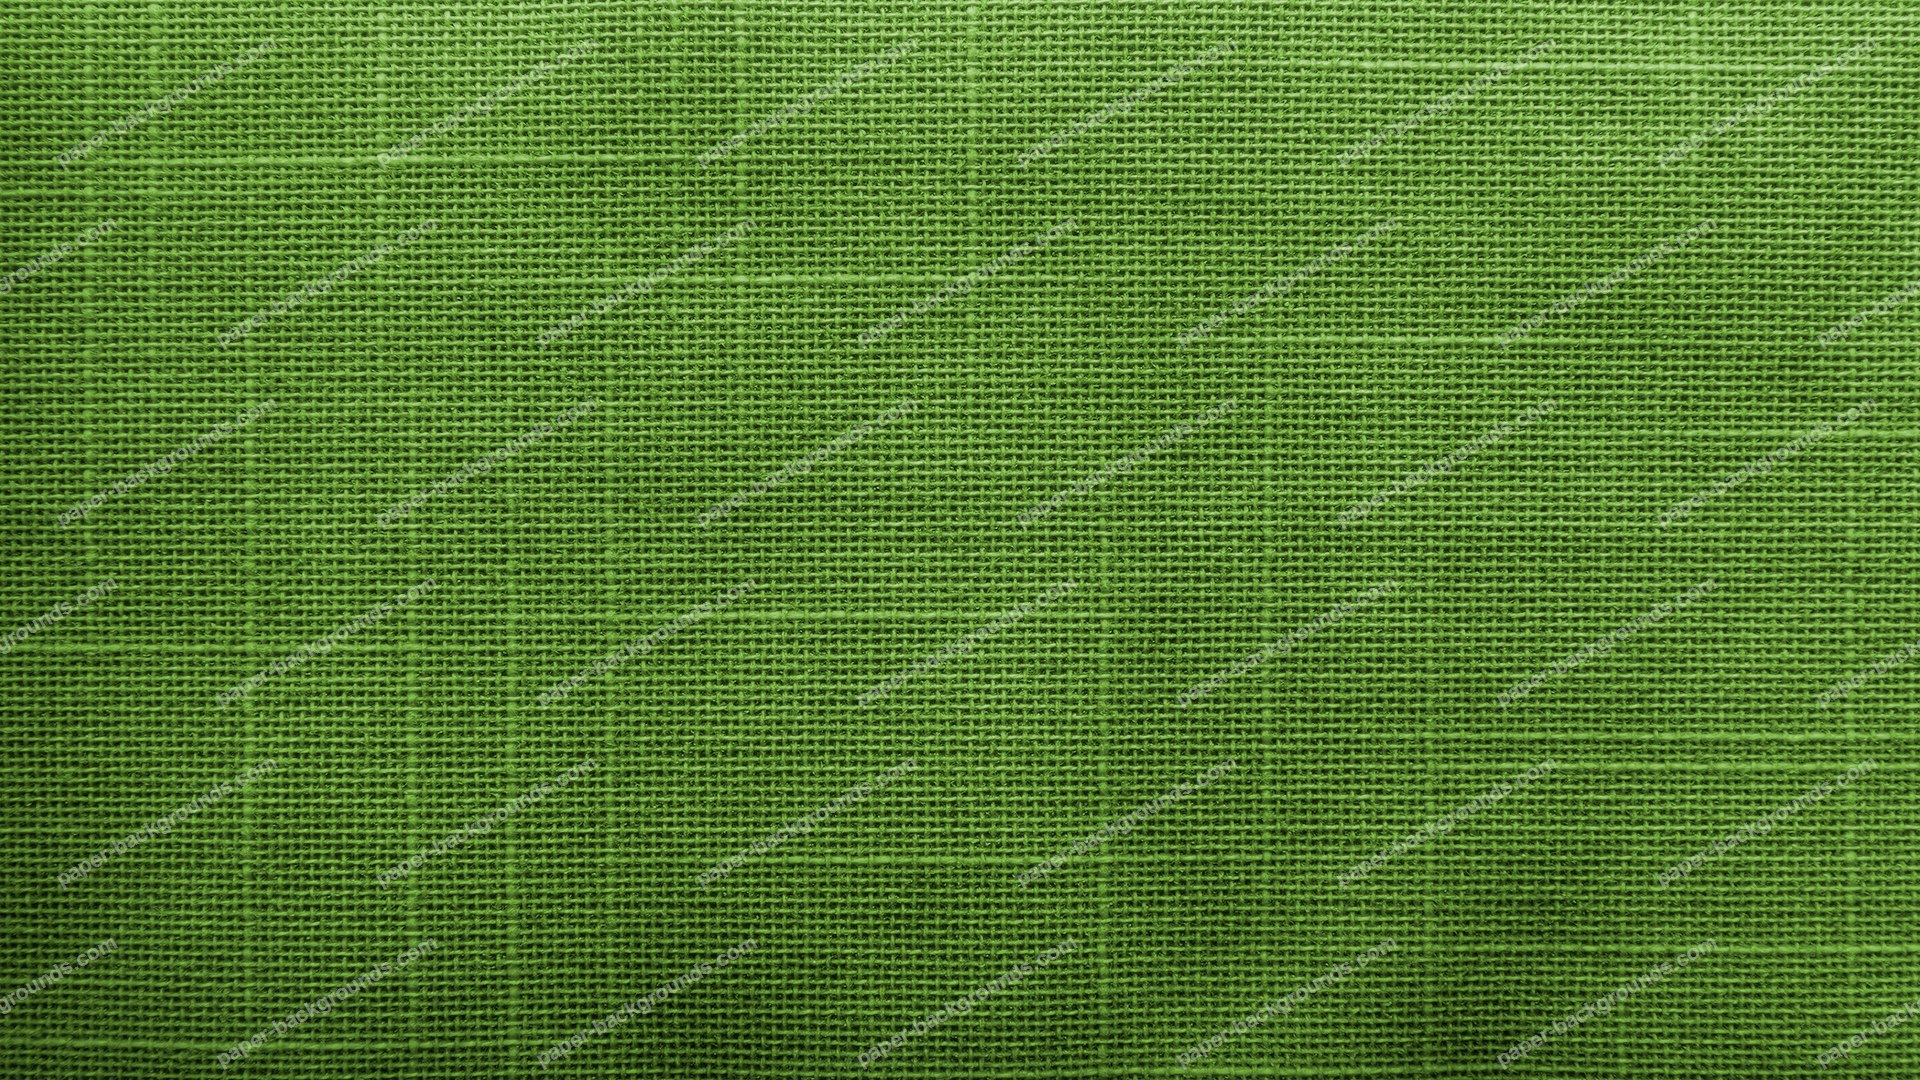 Paper backgrounds royalty free hd paper backgrounds green canvas fabric texture hd 1920 x 1080p thecheapjerseys Gallery